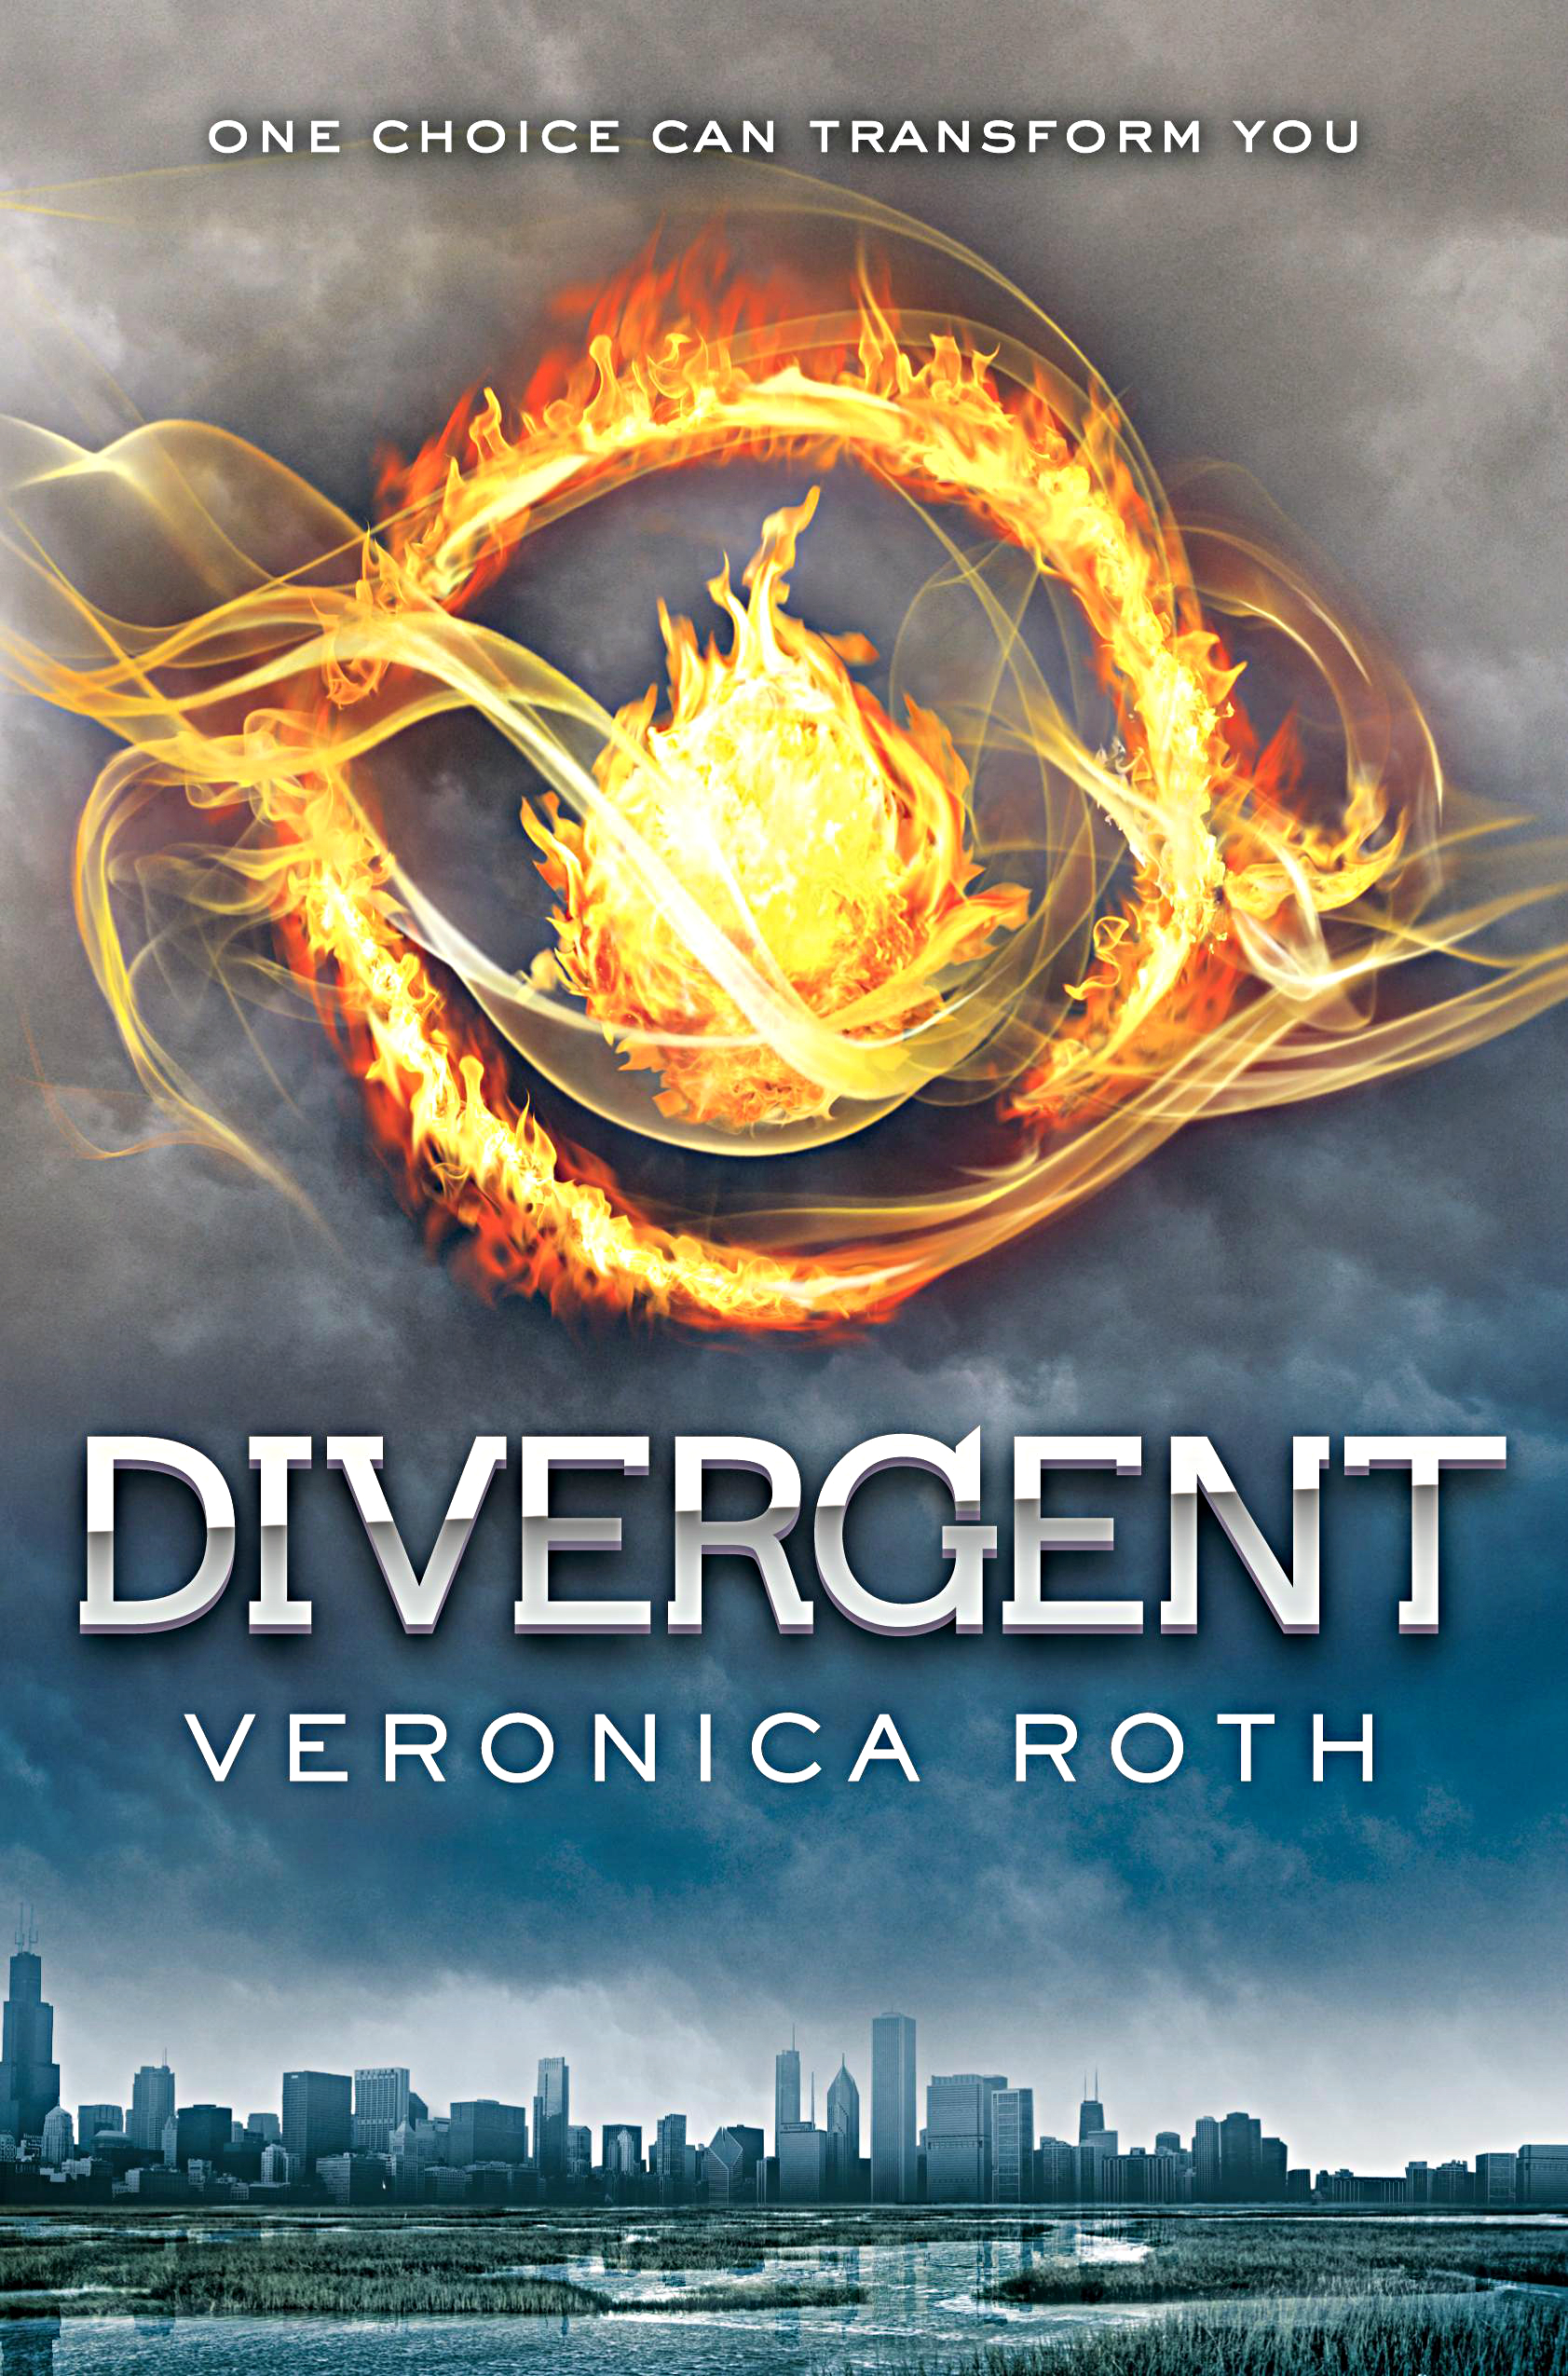 Photo: 'Divergent' by Veronica Roth